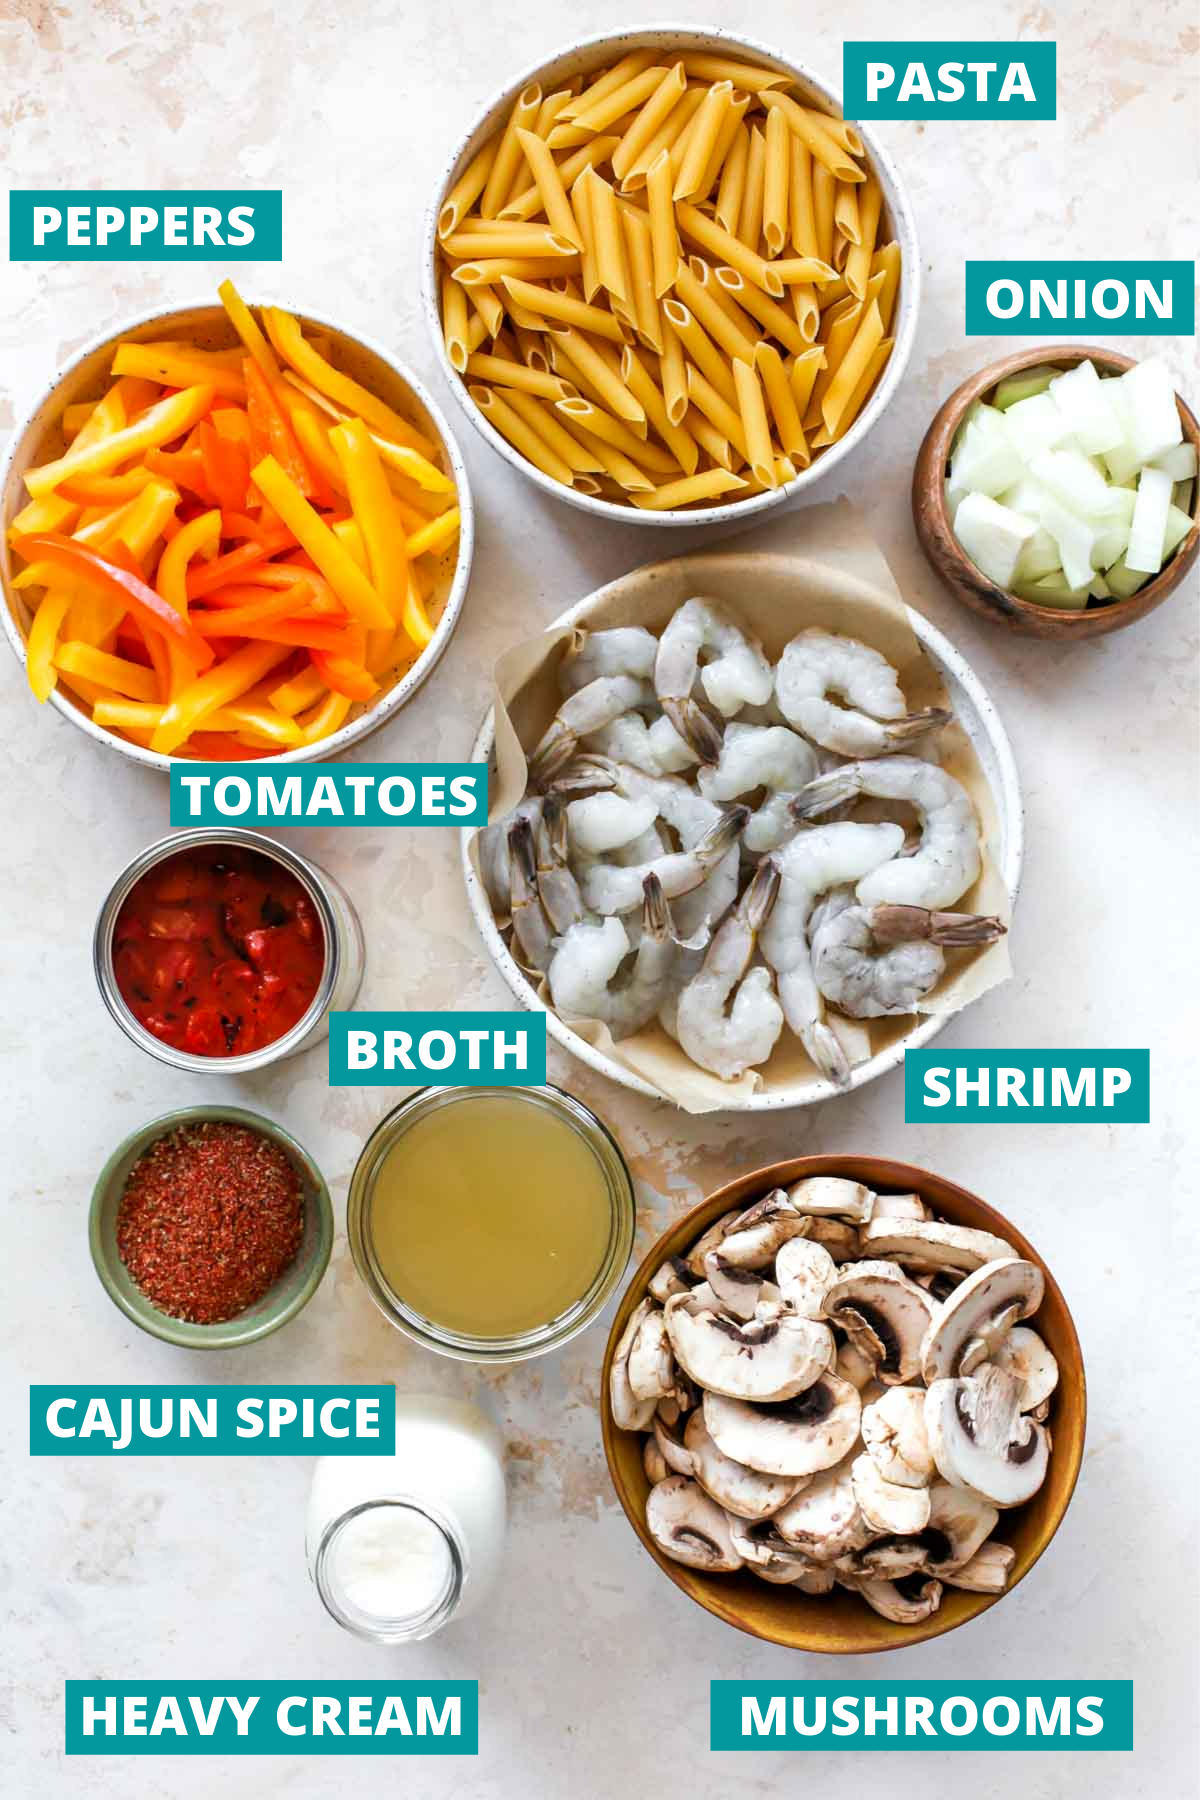 Shrimp, pasta, vegetables, and cajun spice in separate bowls with ingredient labels